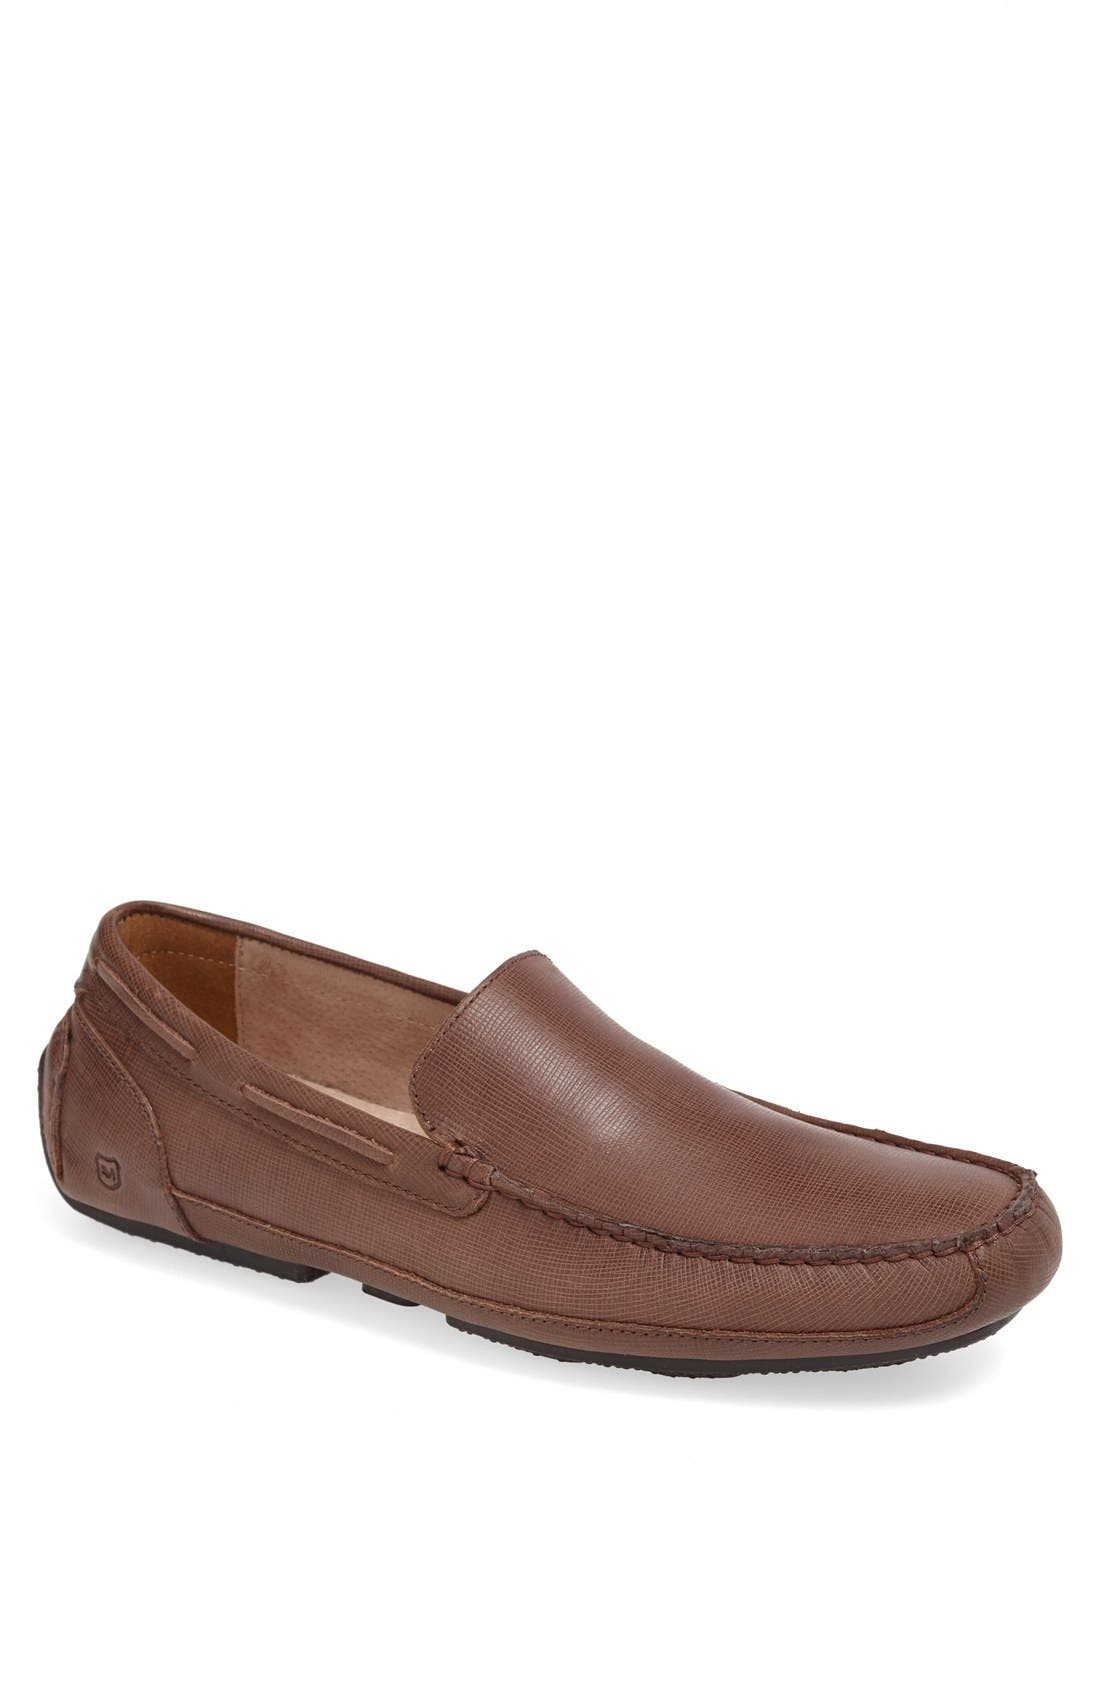 Main Image - Andrew Marc 'Empire' Loafer (Men)